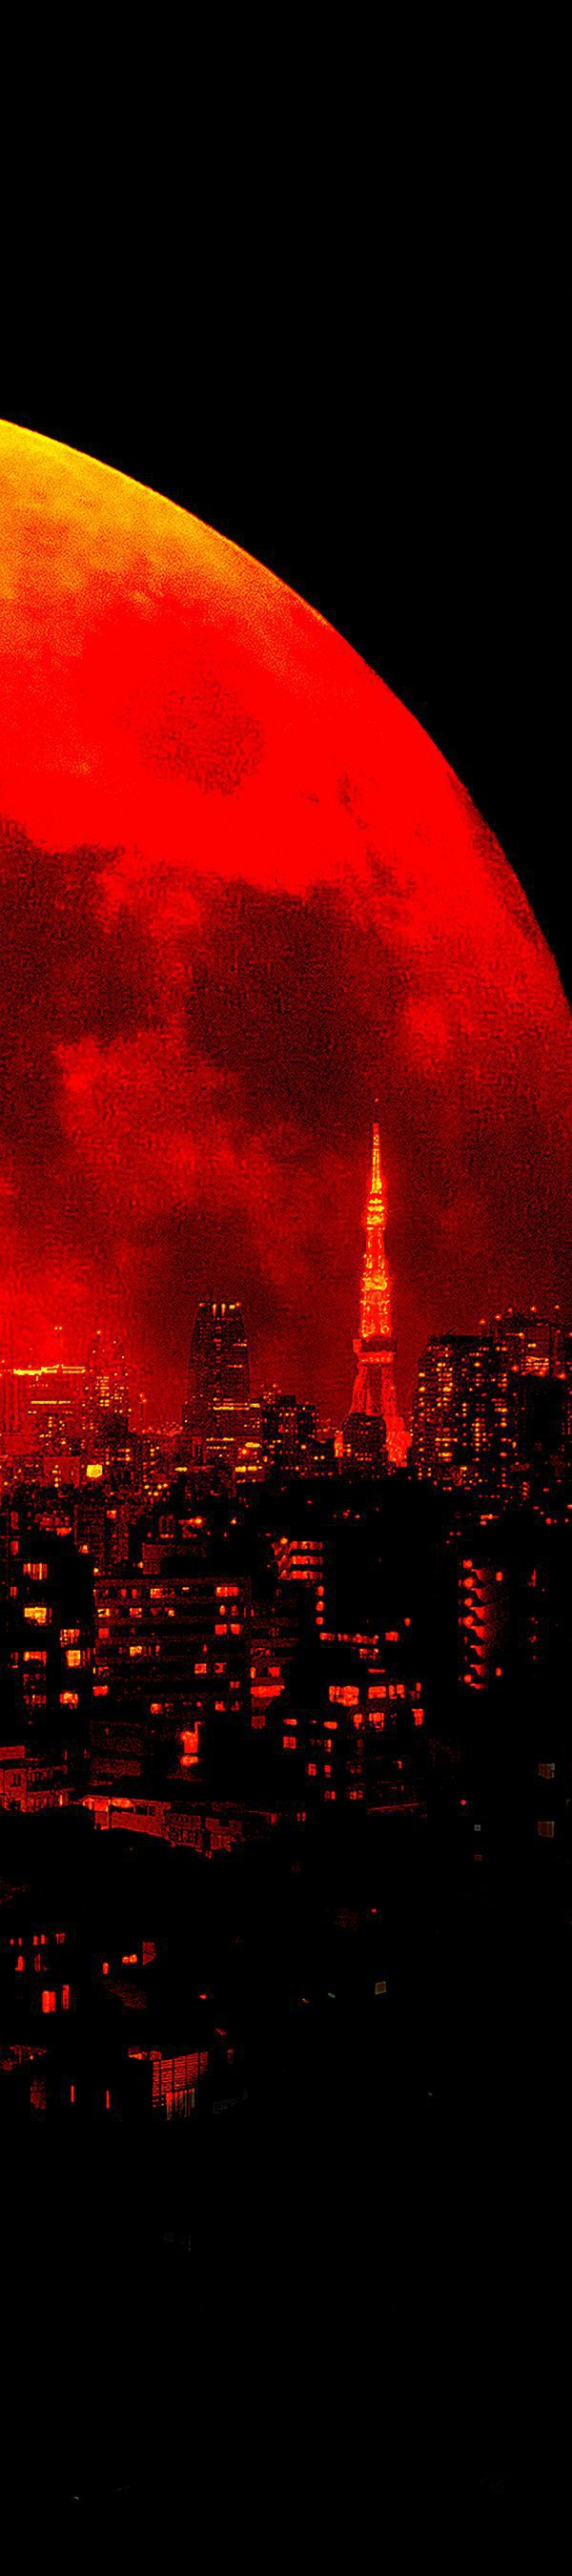 a liberateor who frees the BloodMoon x Tokyo-city